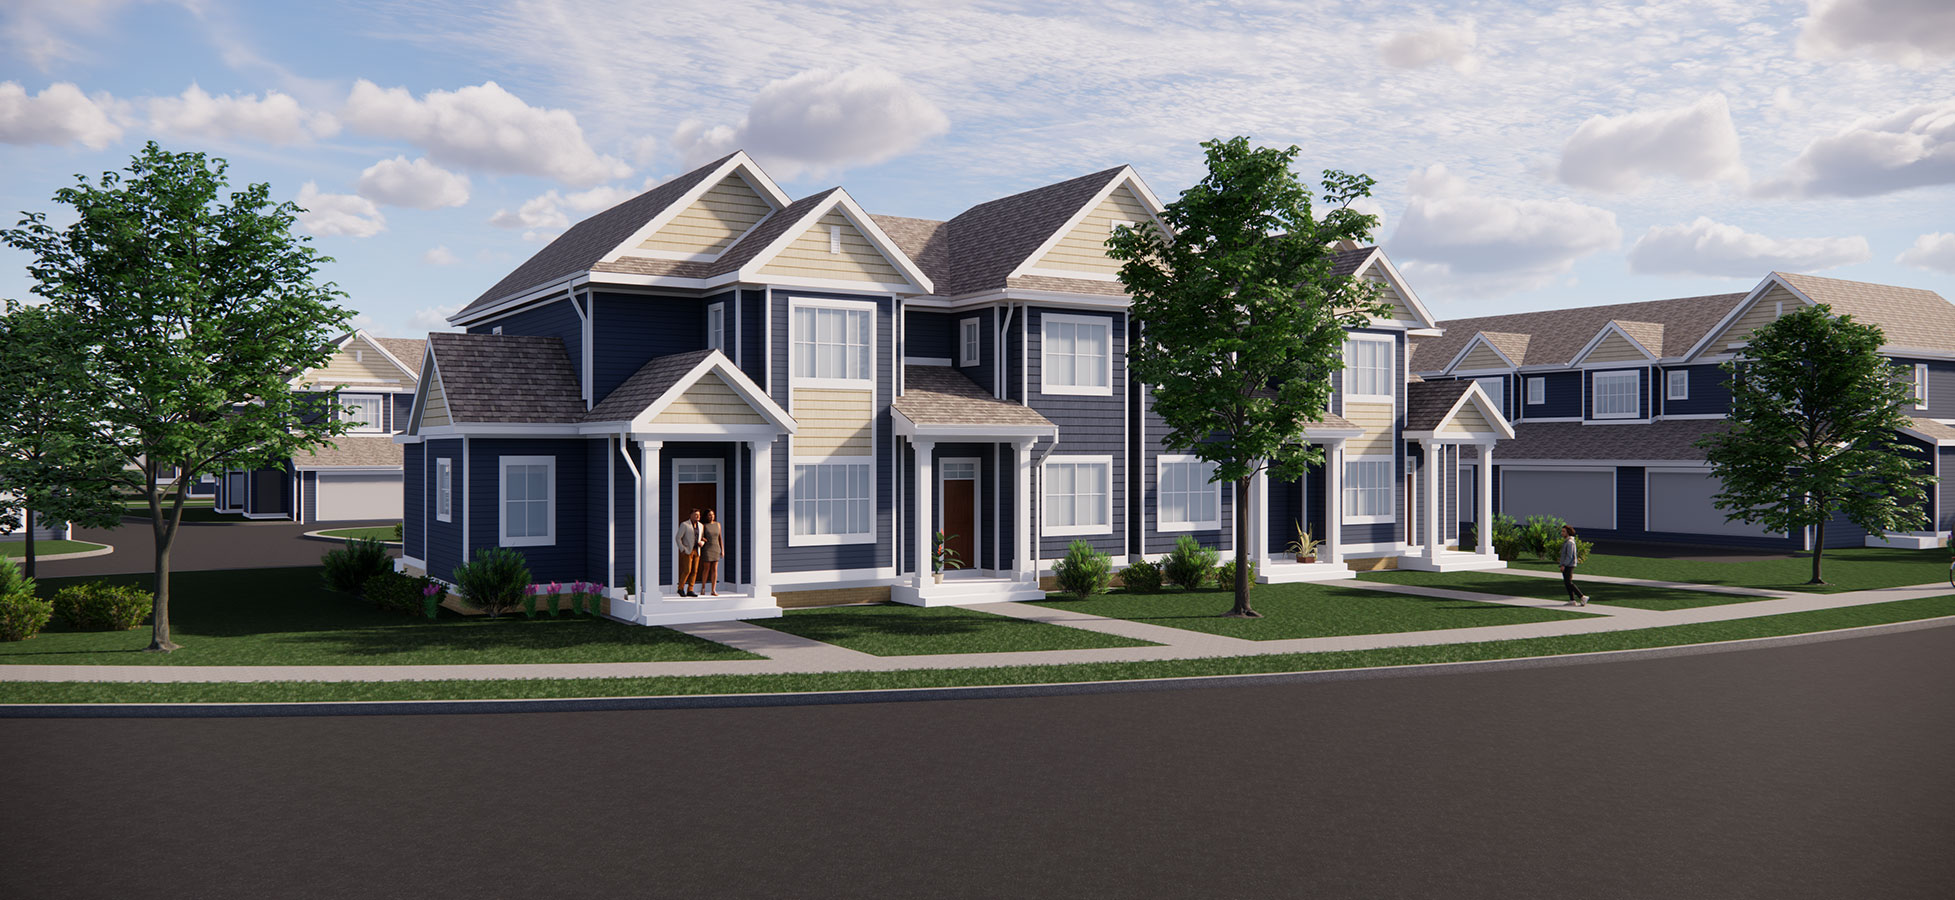 Townhomes at The 85 | Maple Grove Road | Madison, WI